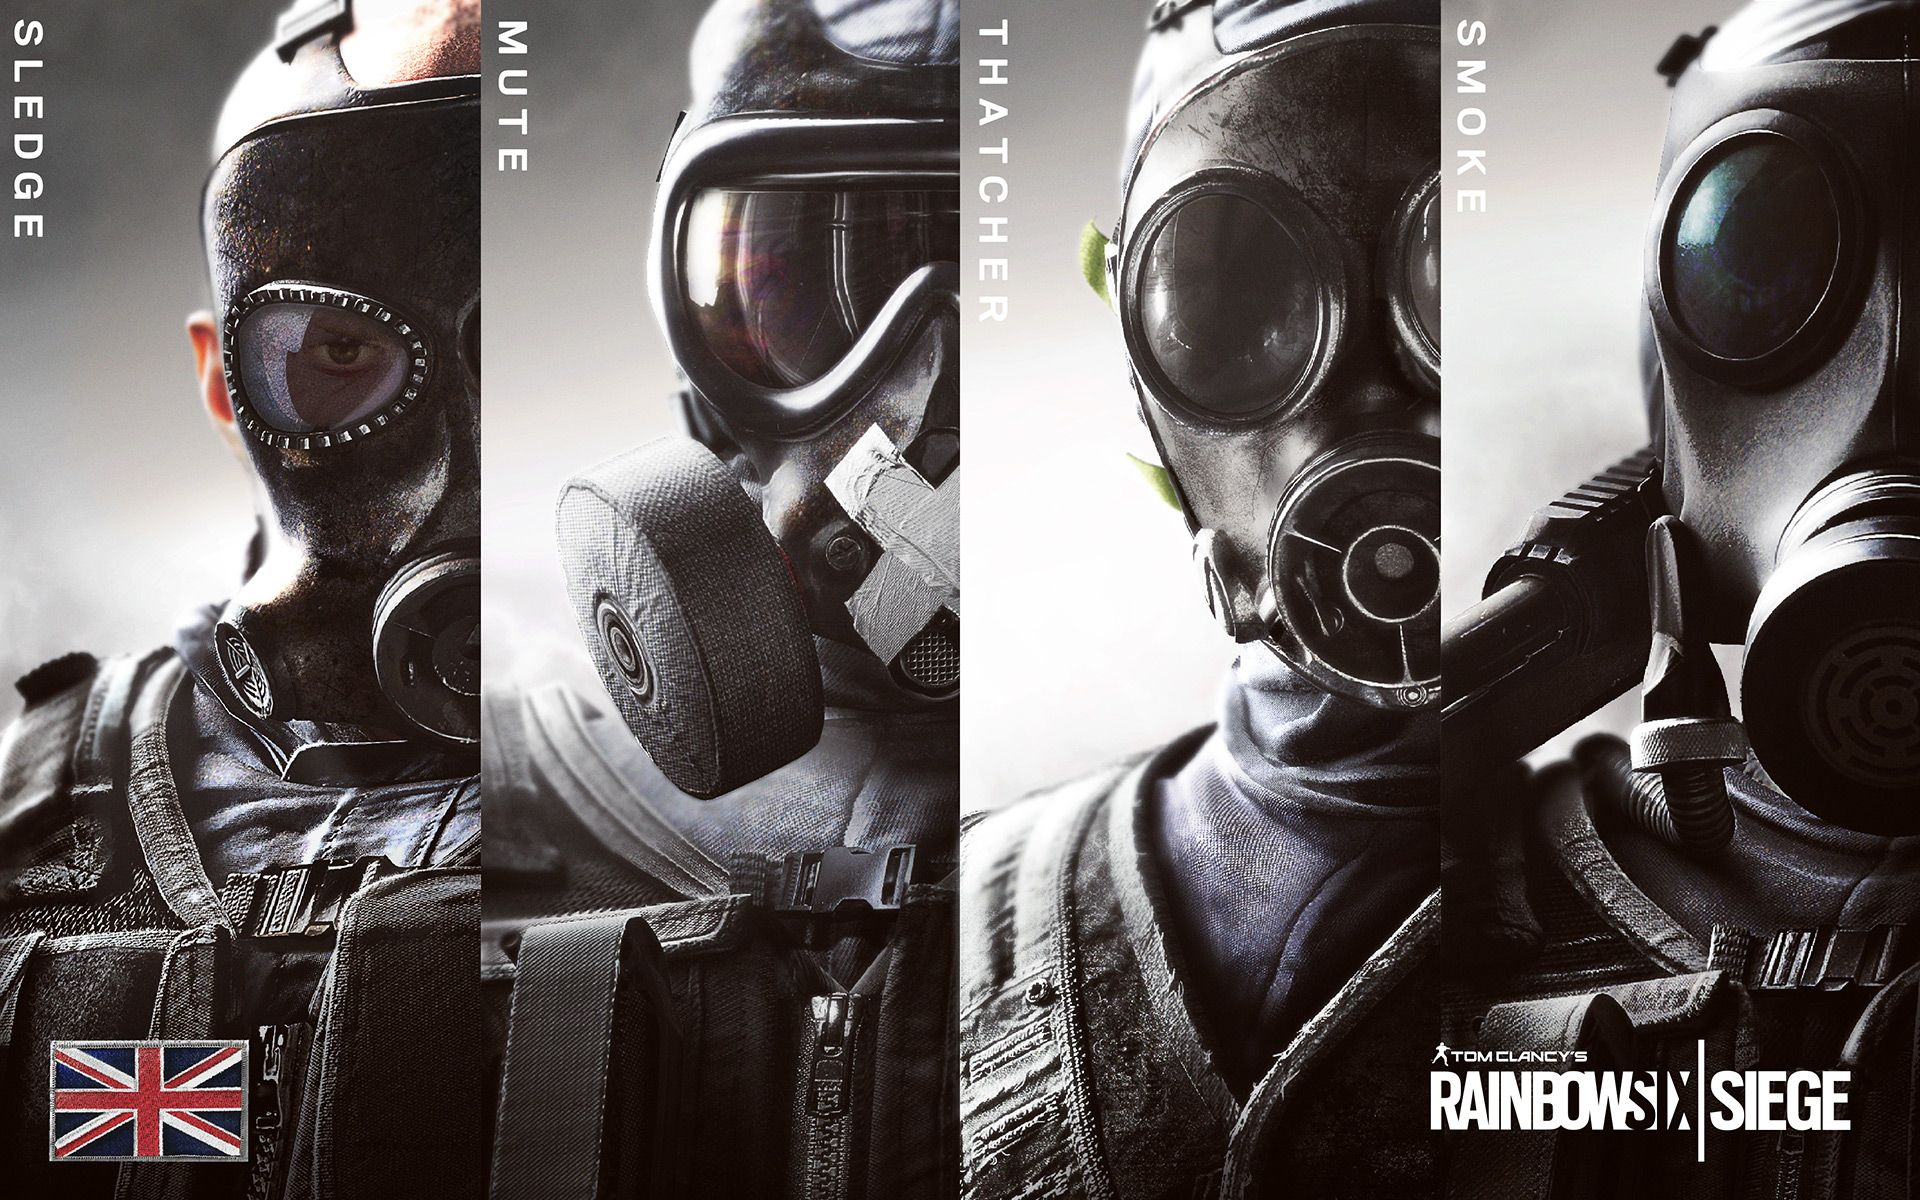 Pubg Hd Wallpaper 1920x1080 Need Iphone 6s Plus: Rainbow Six Siege Wallpapers [1920x1080] Need #iPhone #6S